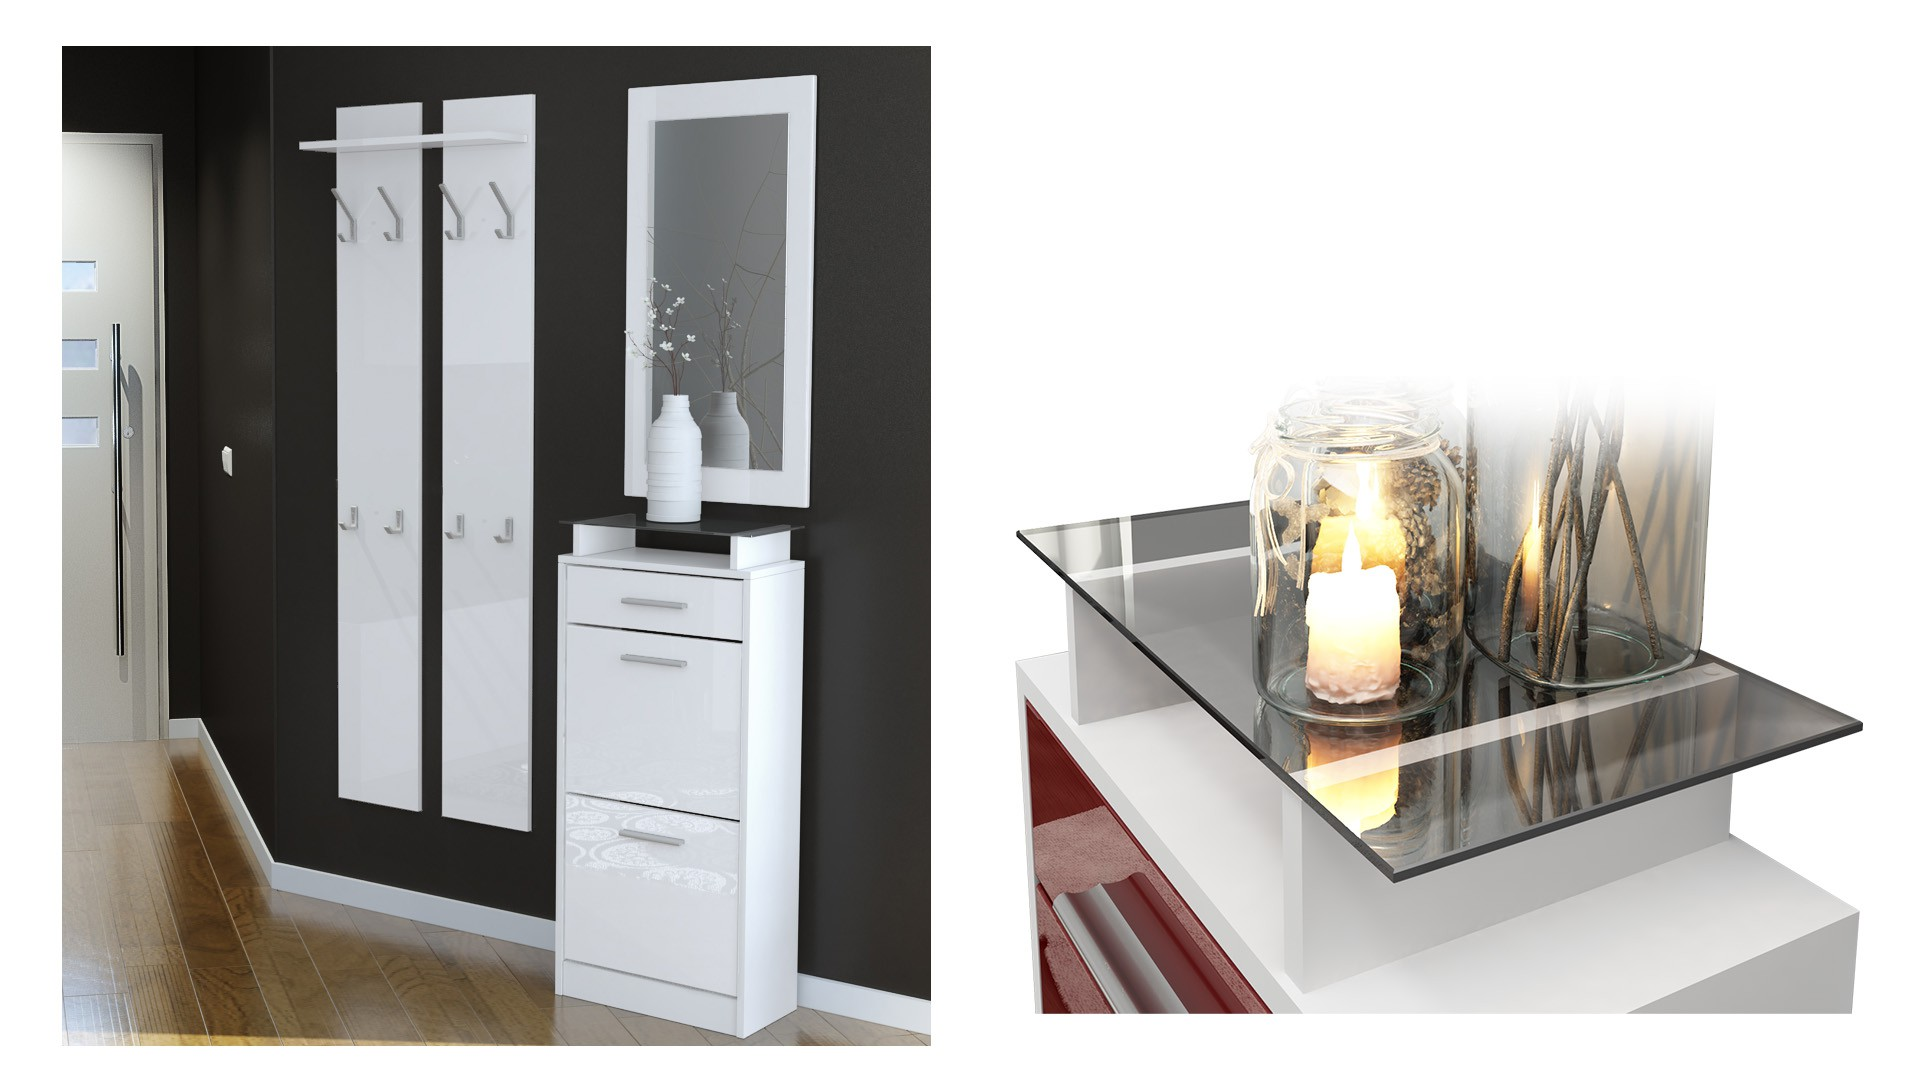 ensemble de hall d 39 entr e laqu design noir et bordeaux pour meuble. Black Bedroom Furniture Sets. Home Design Ideas